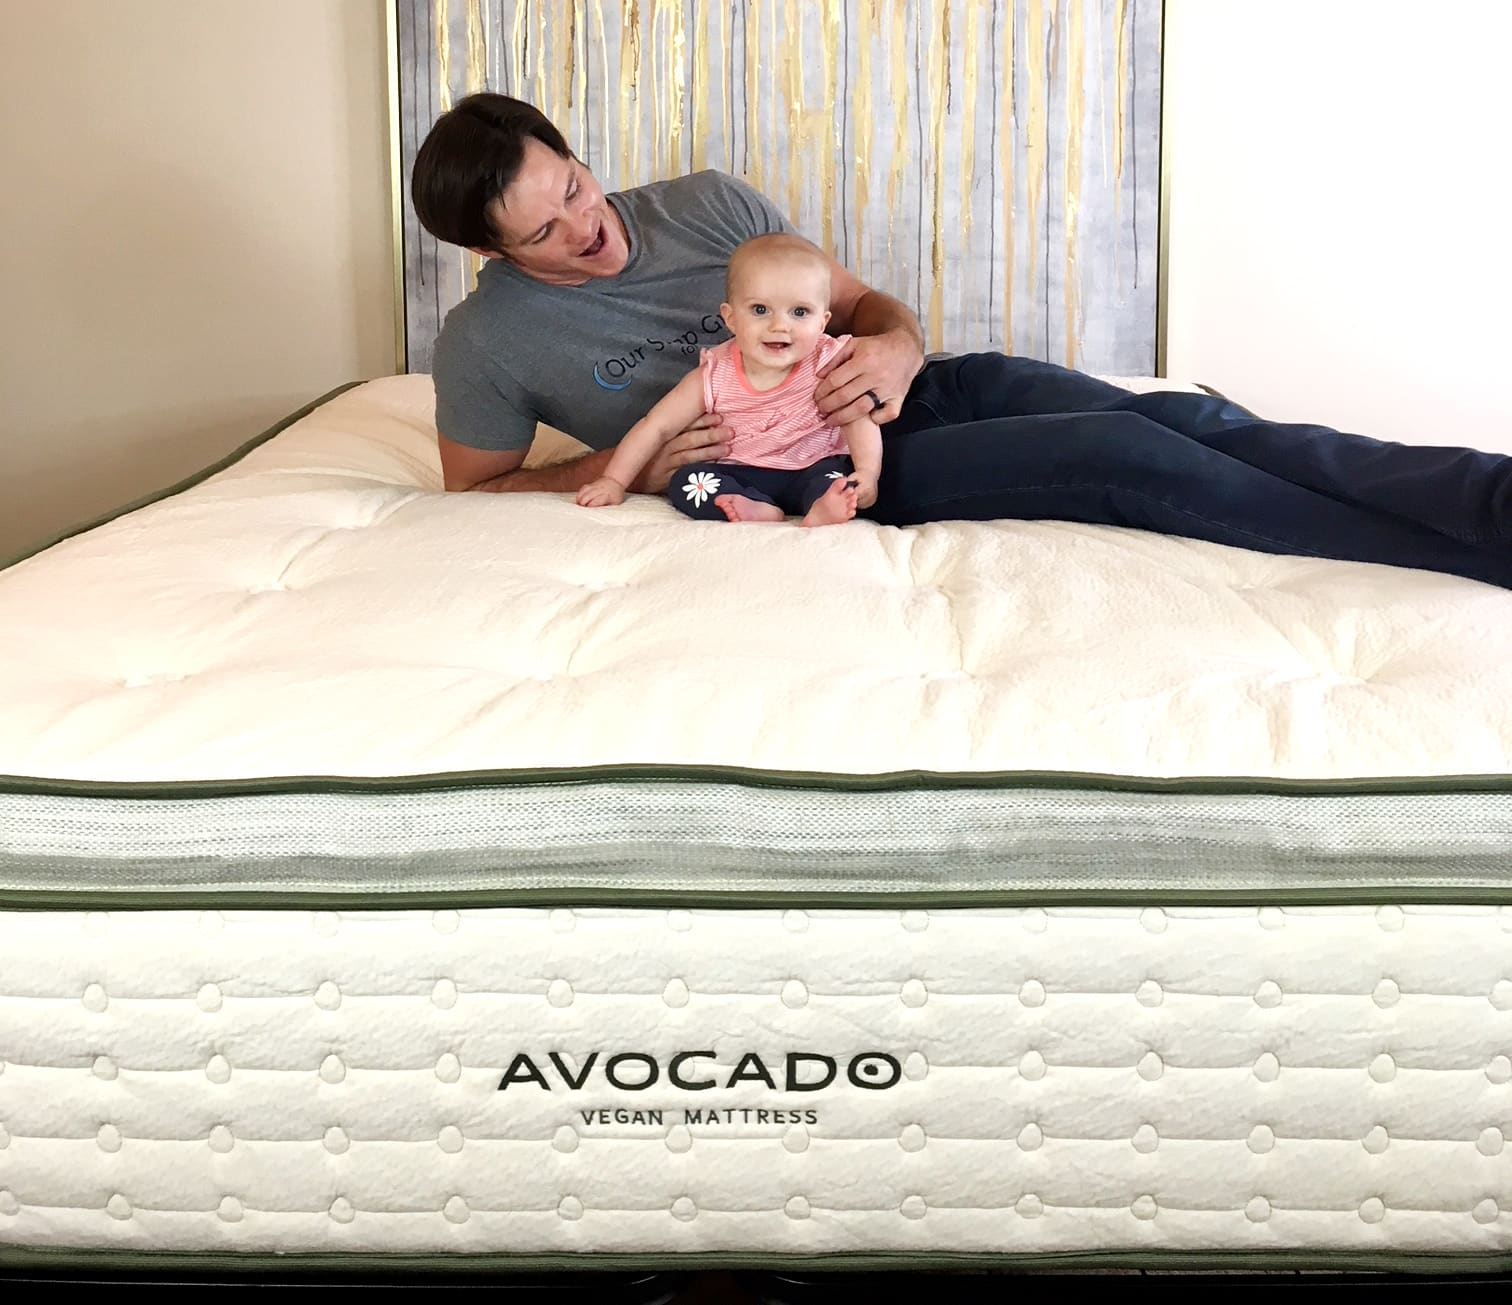 best mattress avocado